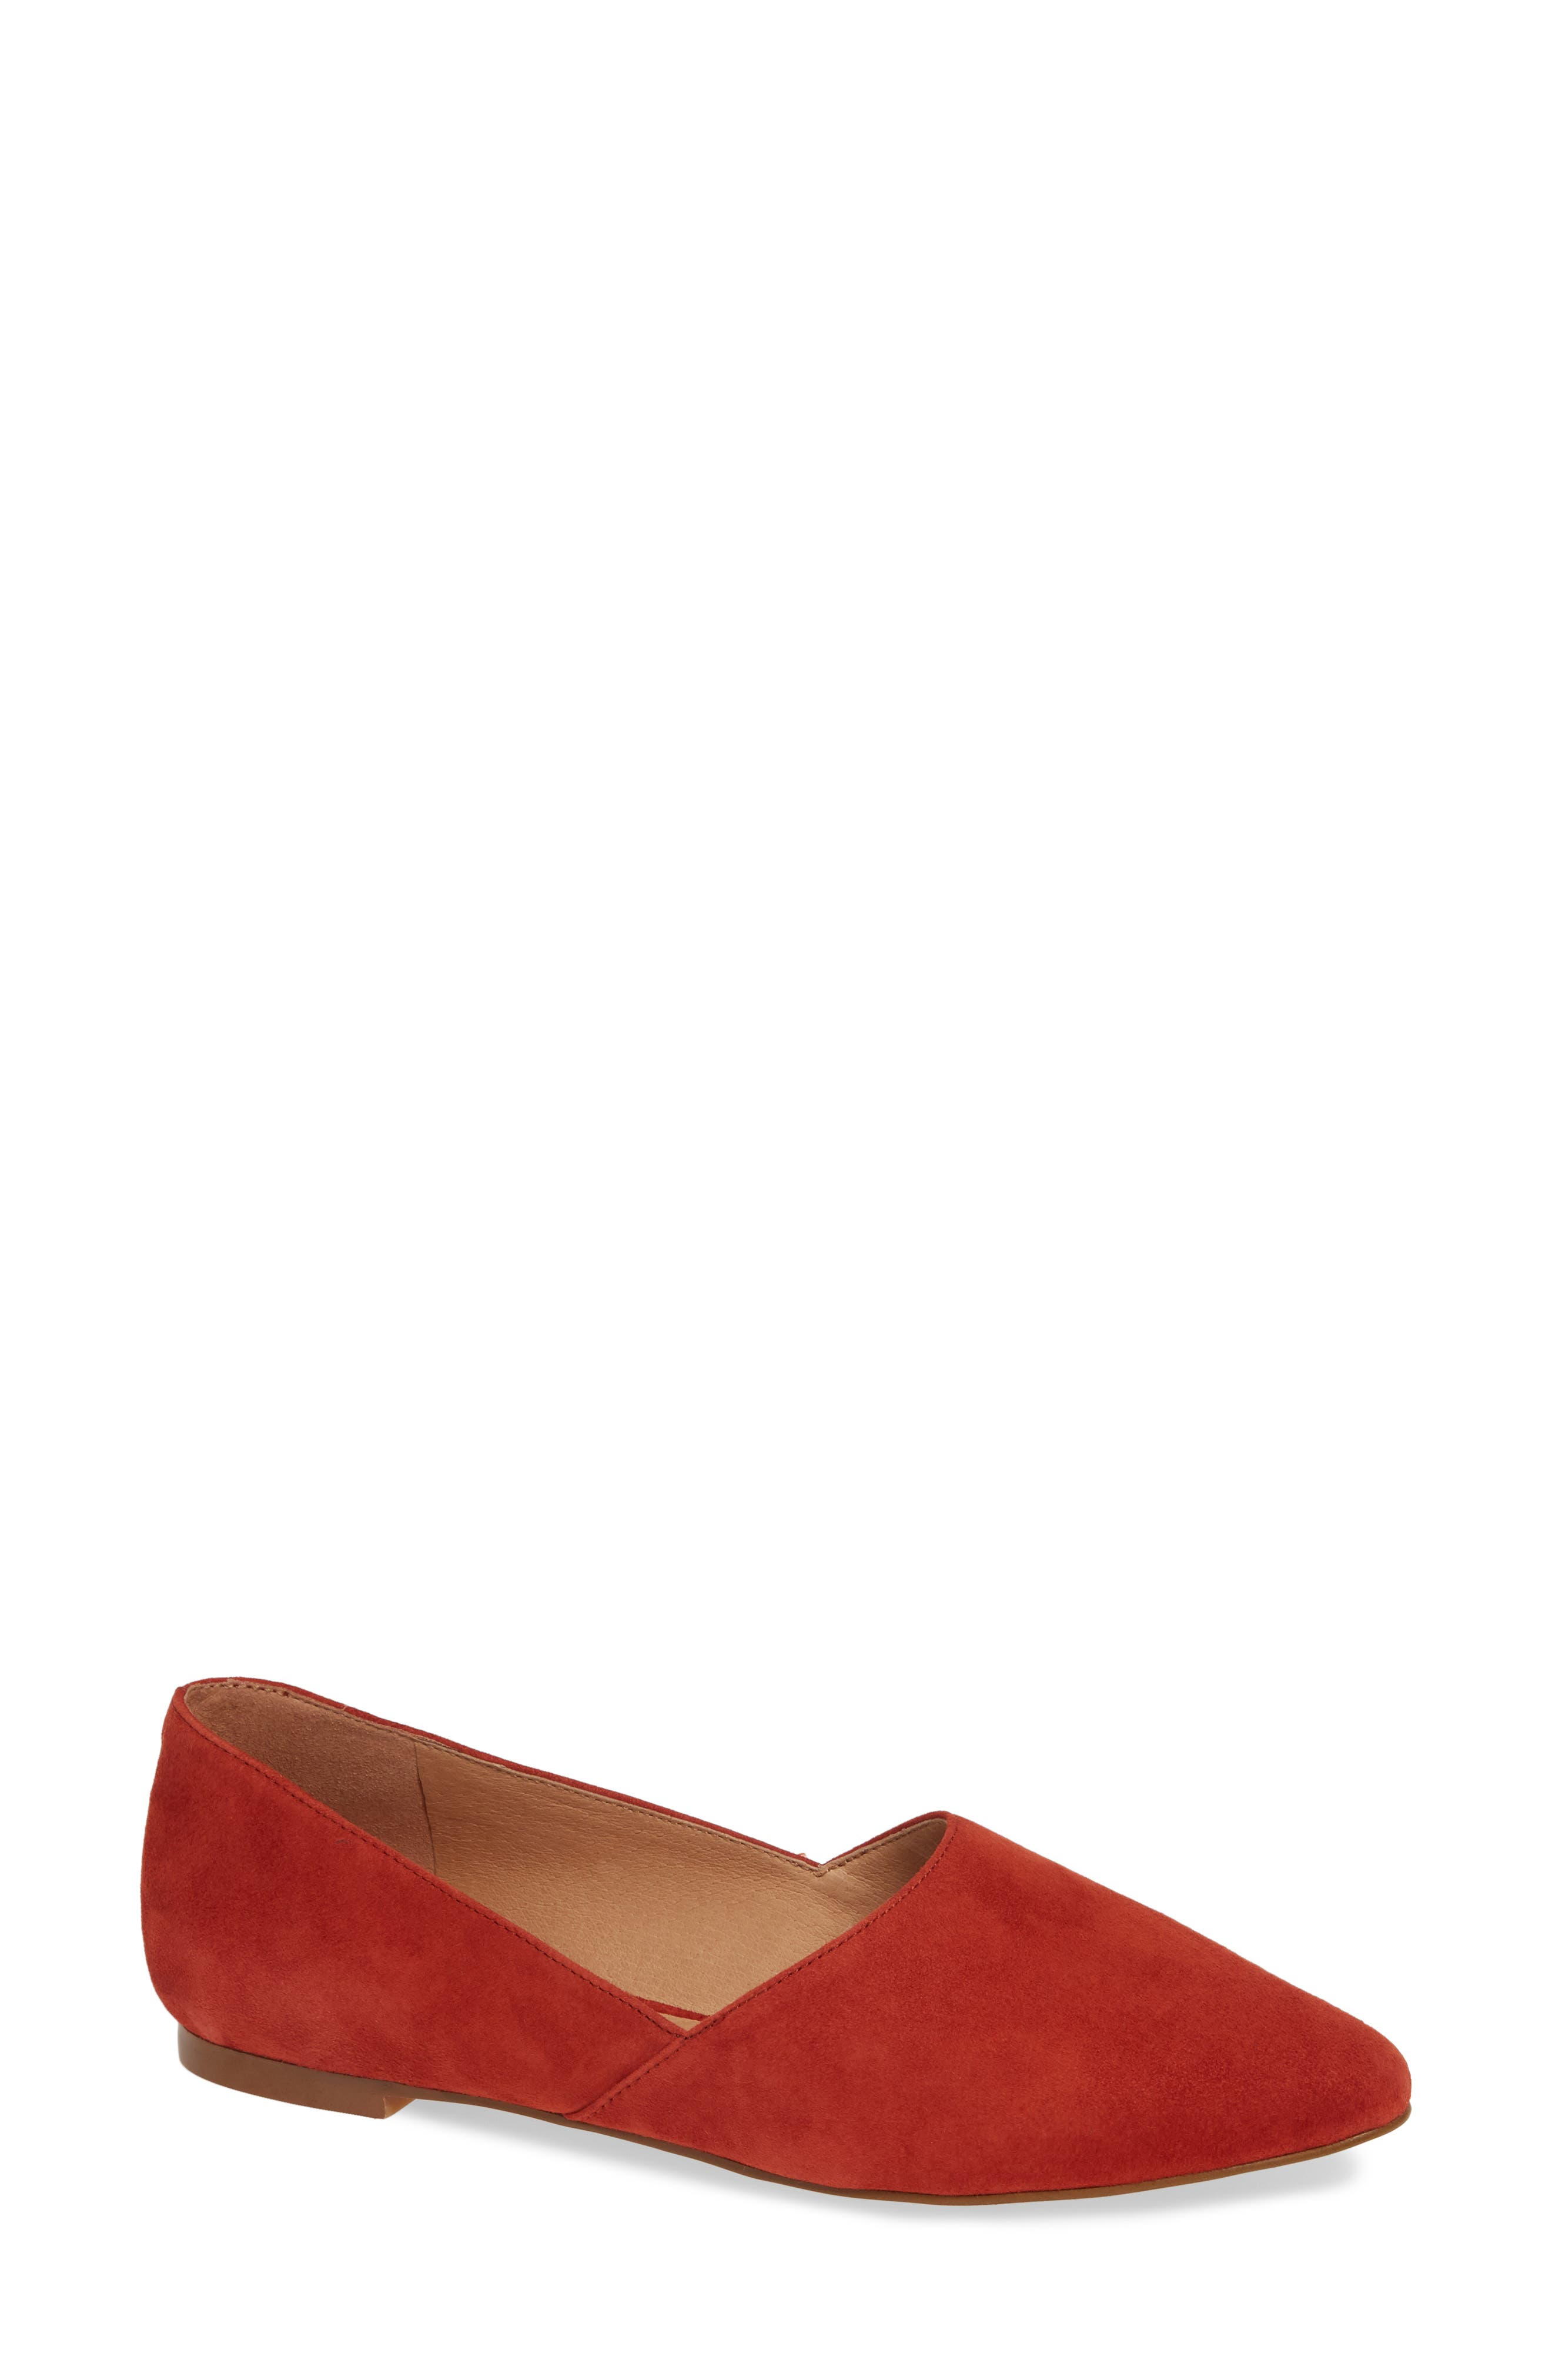 Lizbeth Pointy Toe Flat,                             Main thumbnail 1, color,                             DARK CINNABAR